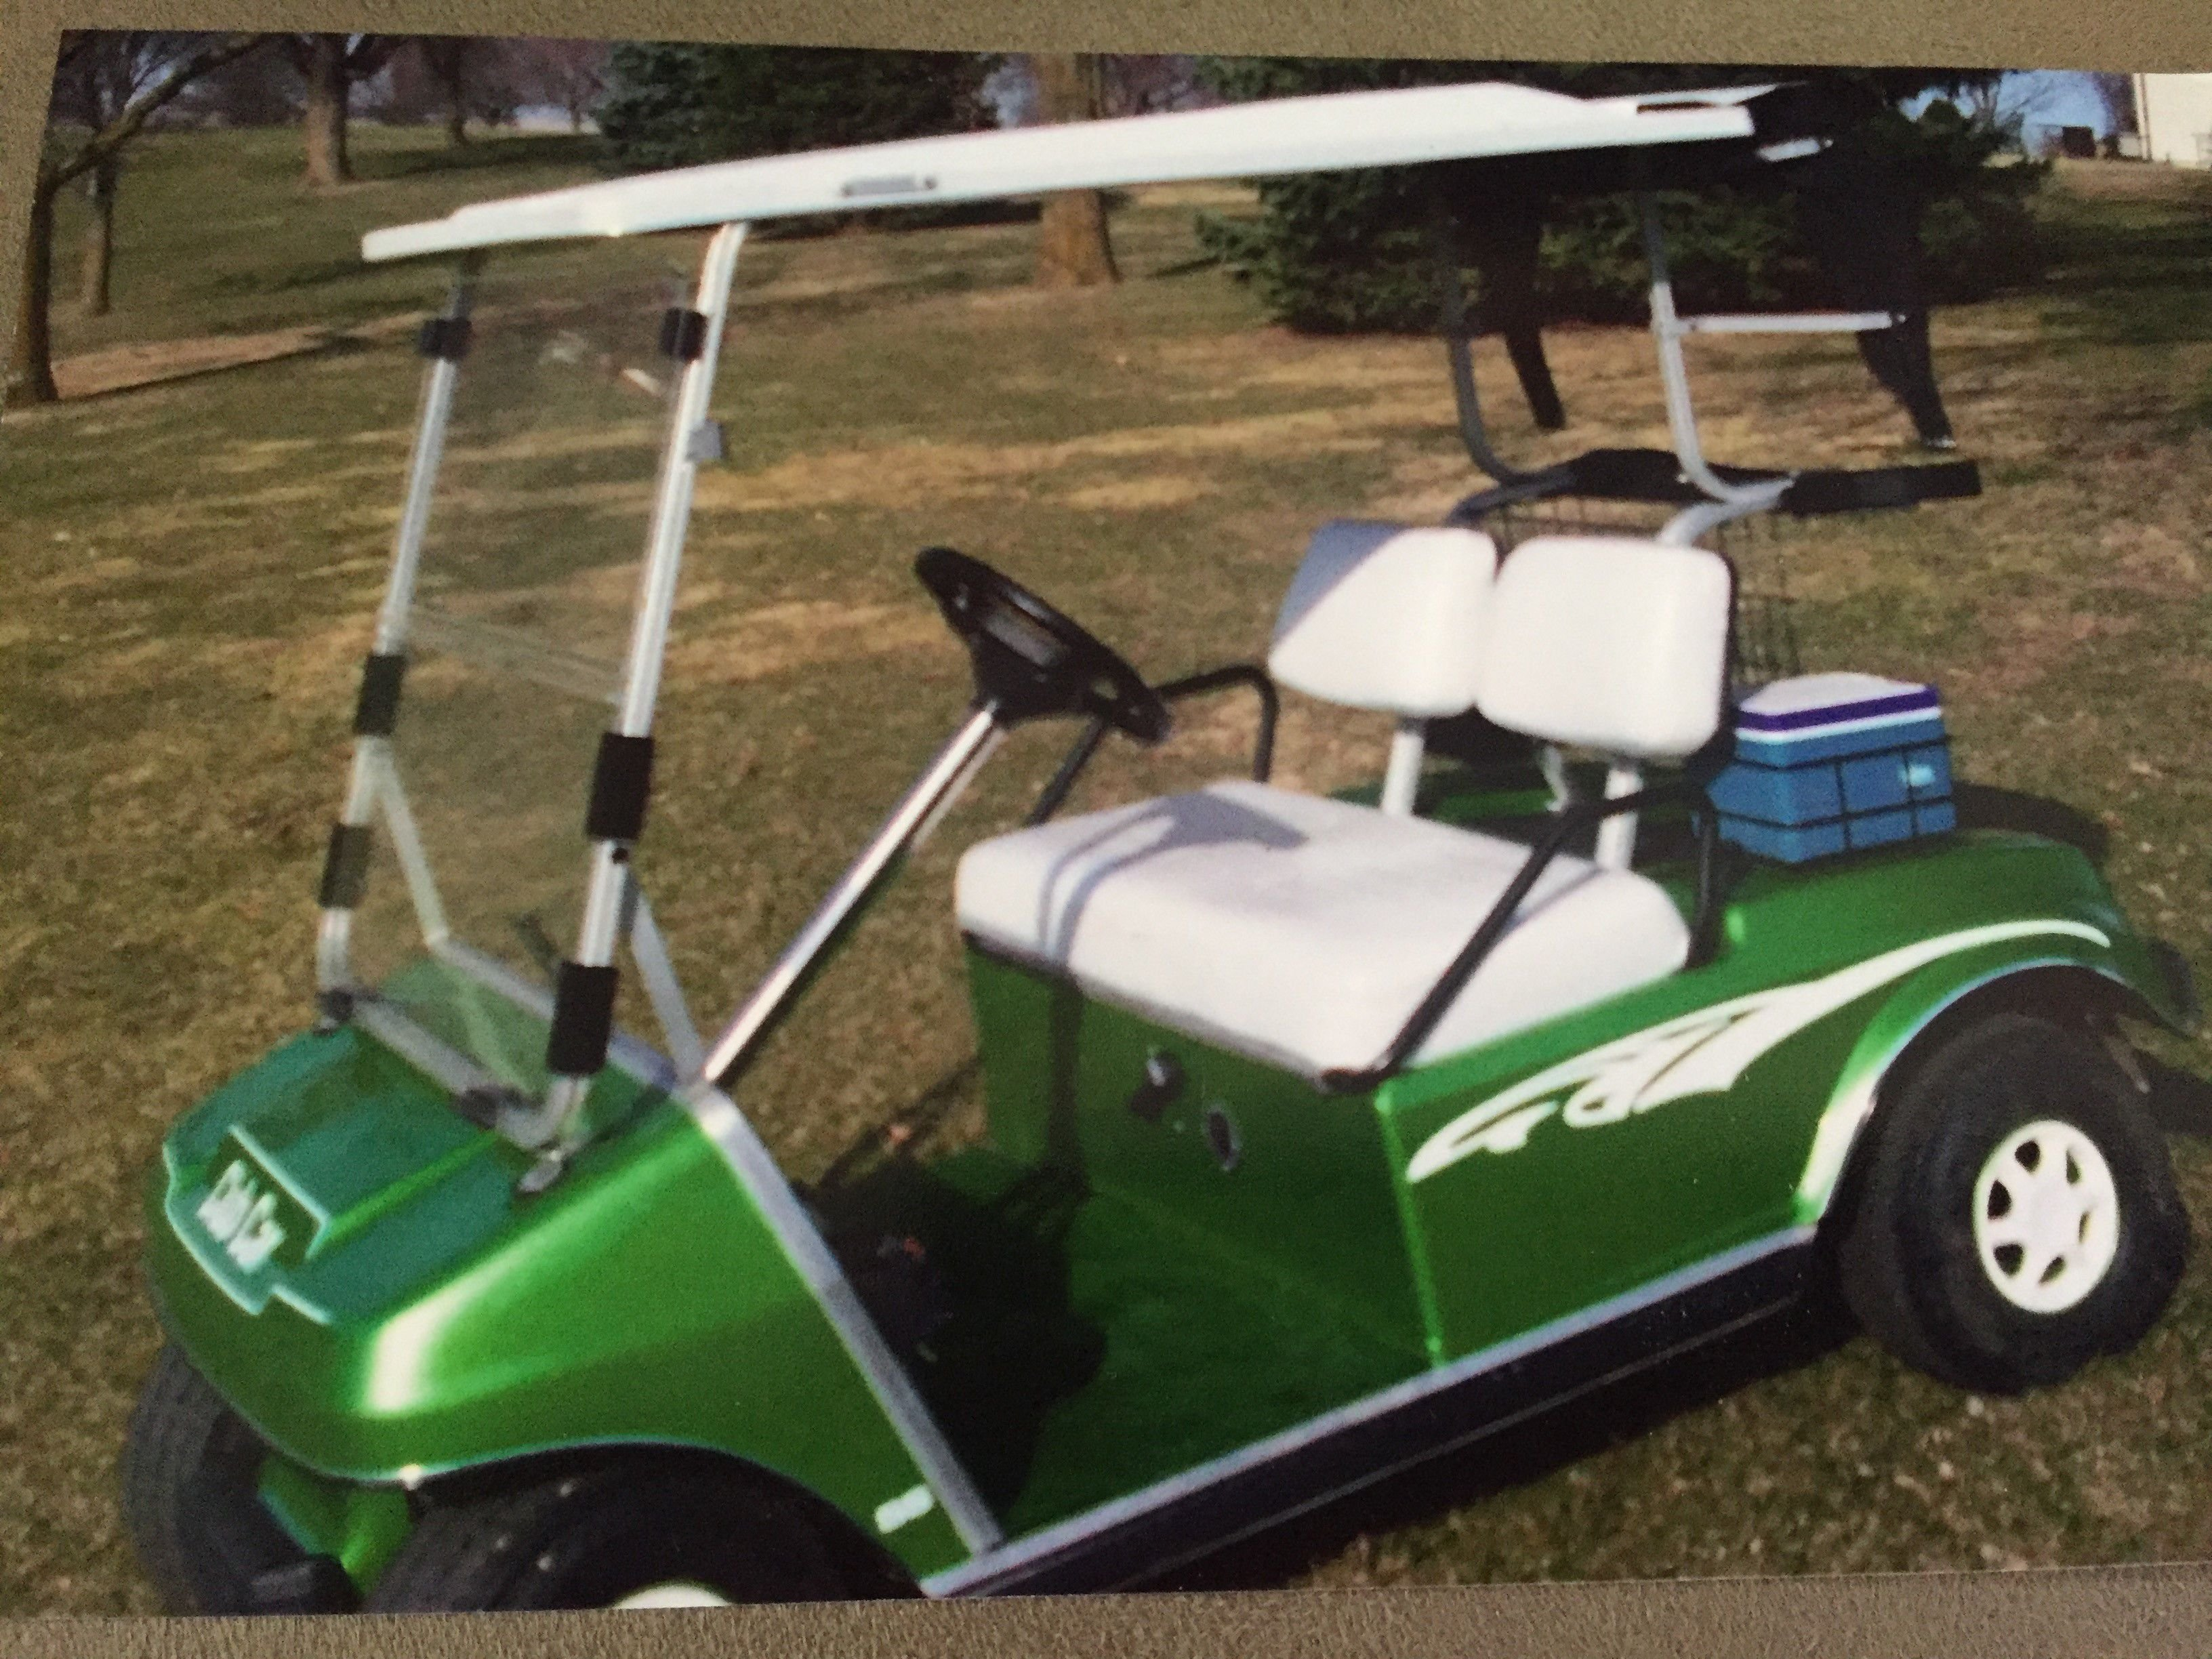 2 Electric Golf Carts for sale Lawn Garden Patio kmalandcom